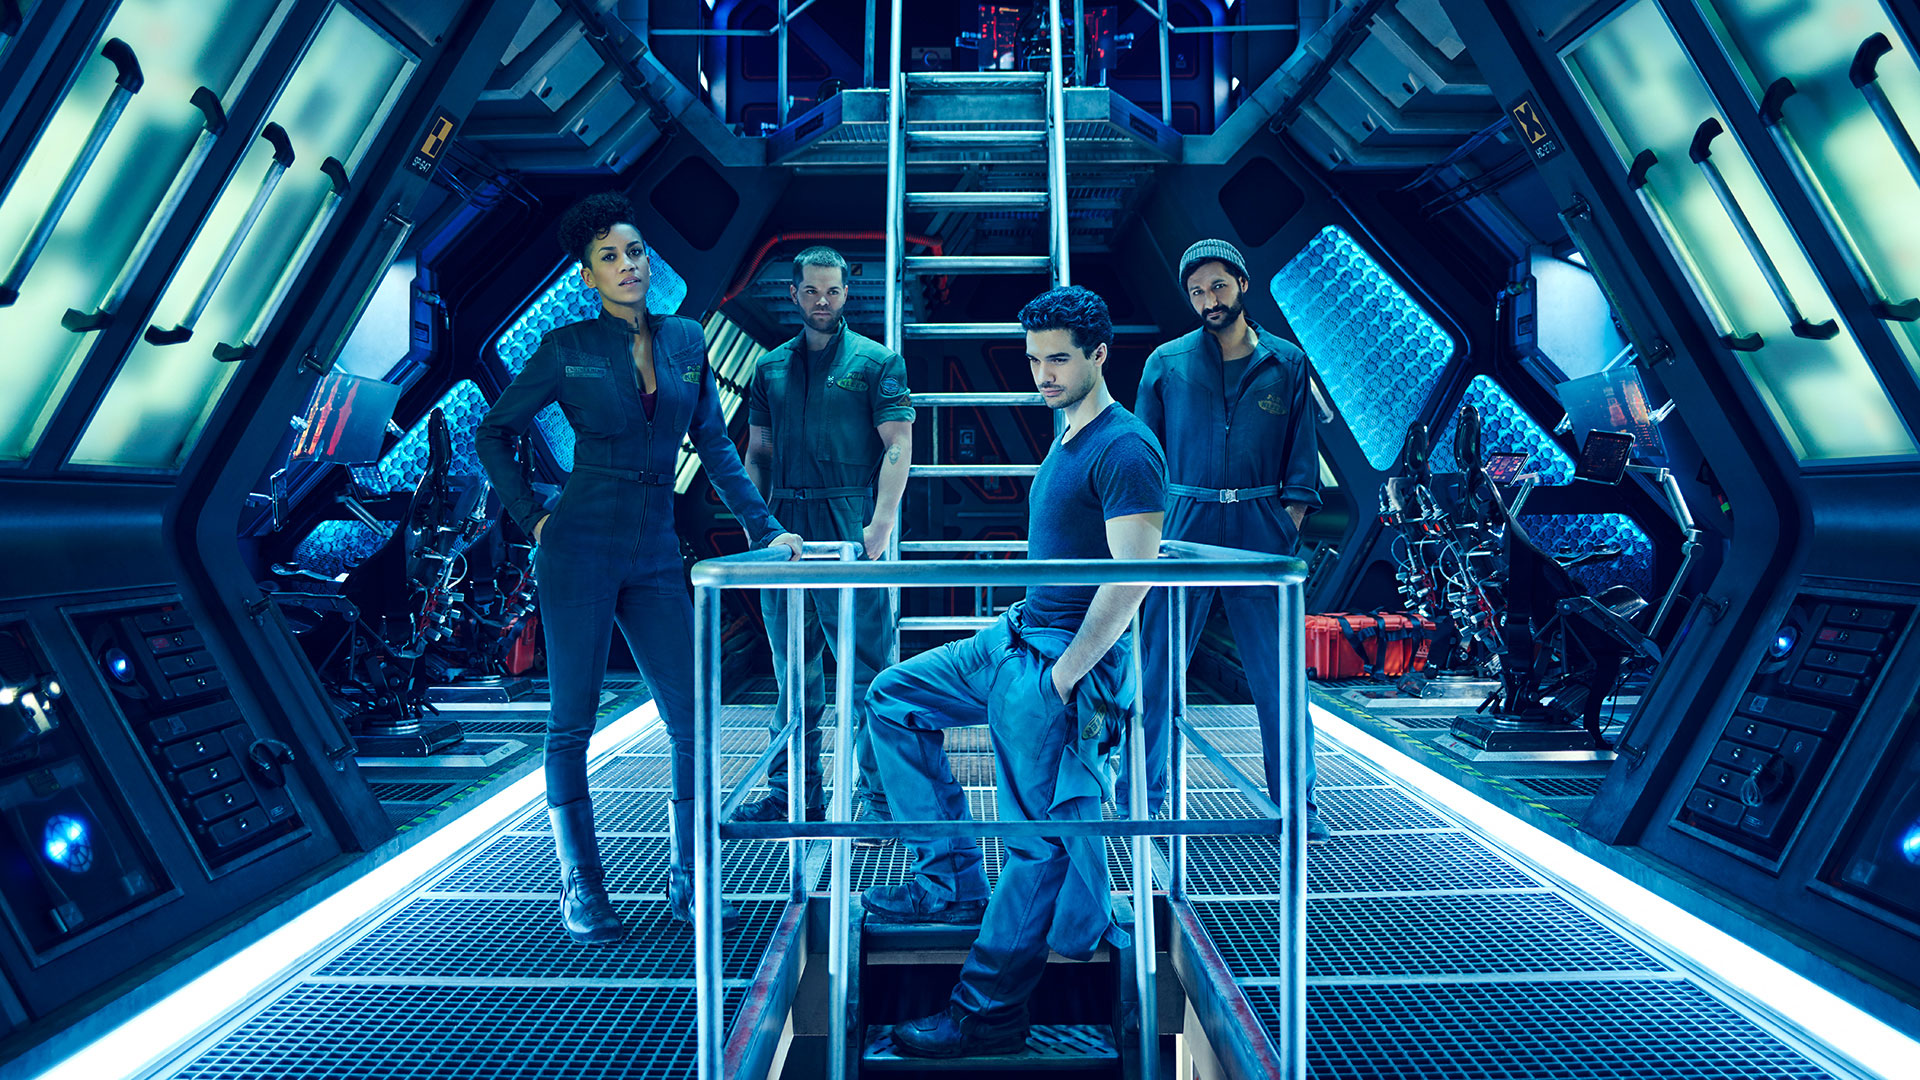 Permanent roles for three actors in the science fiction series The Expanse